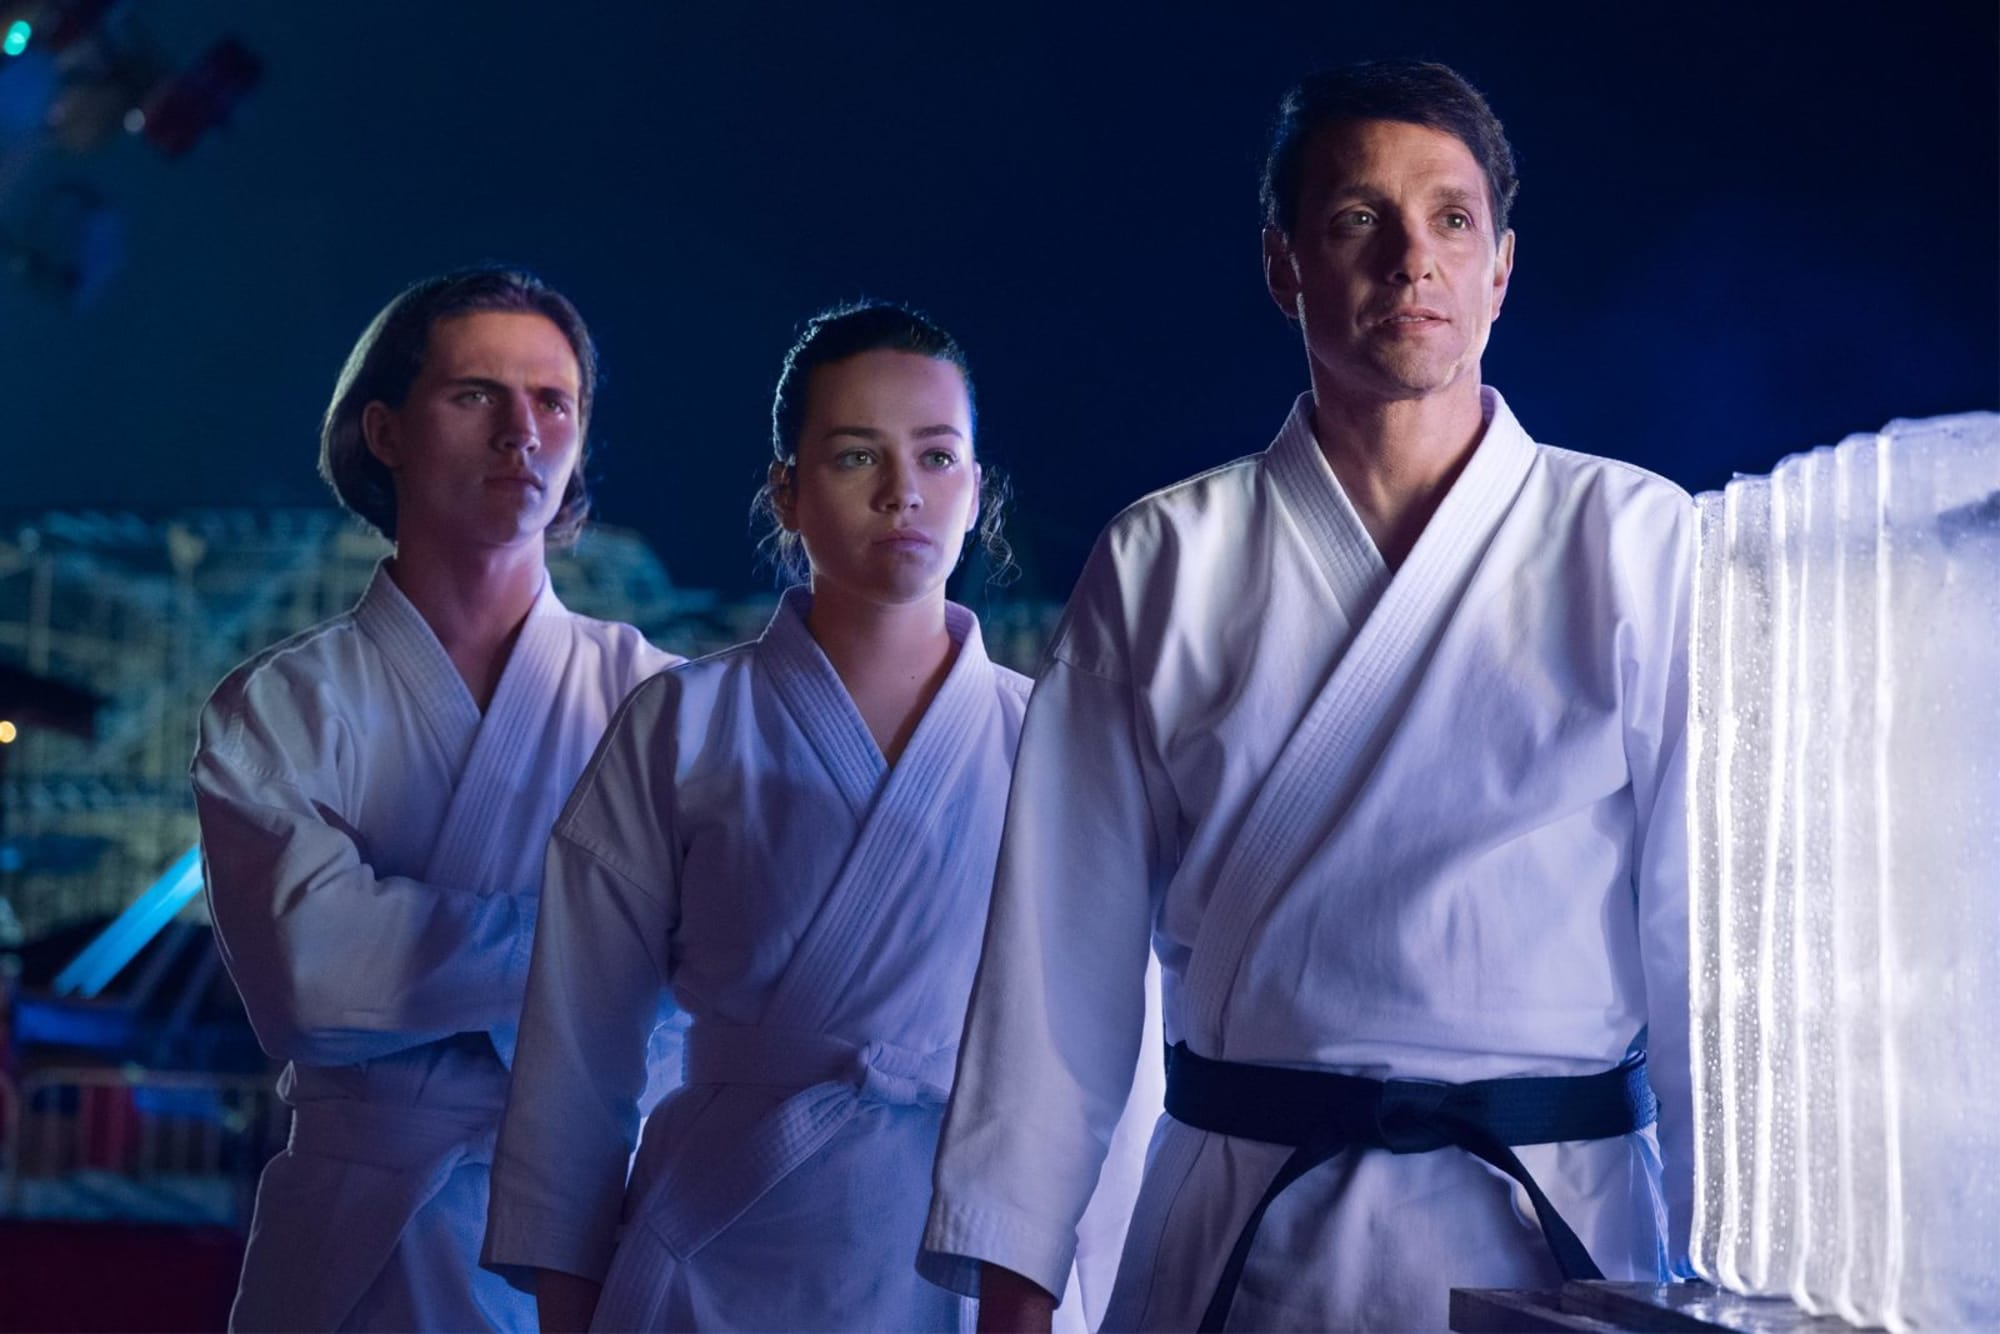 Cobra Kai is coming to Netflix later this year, renewed for season 3